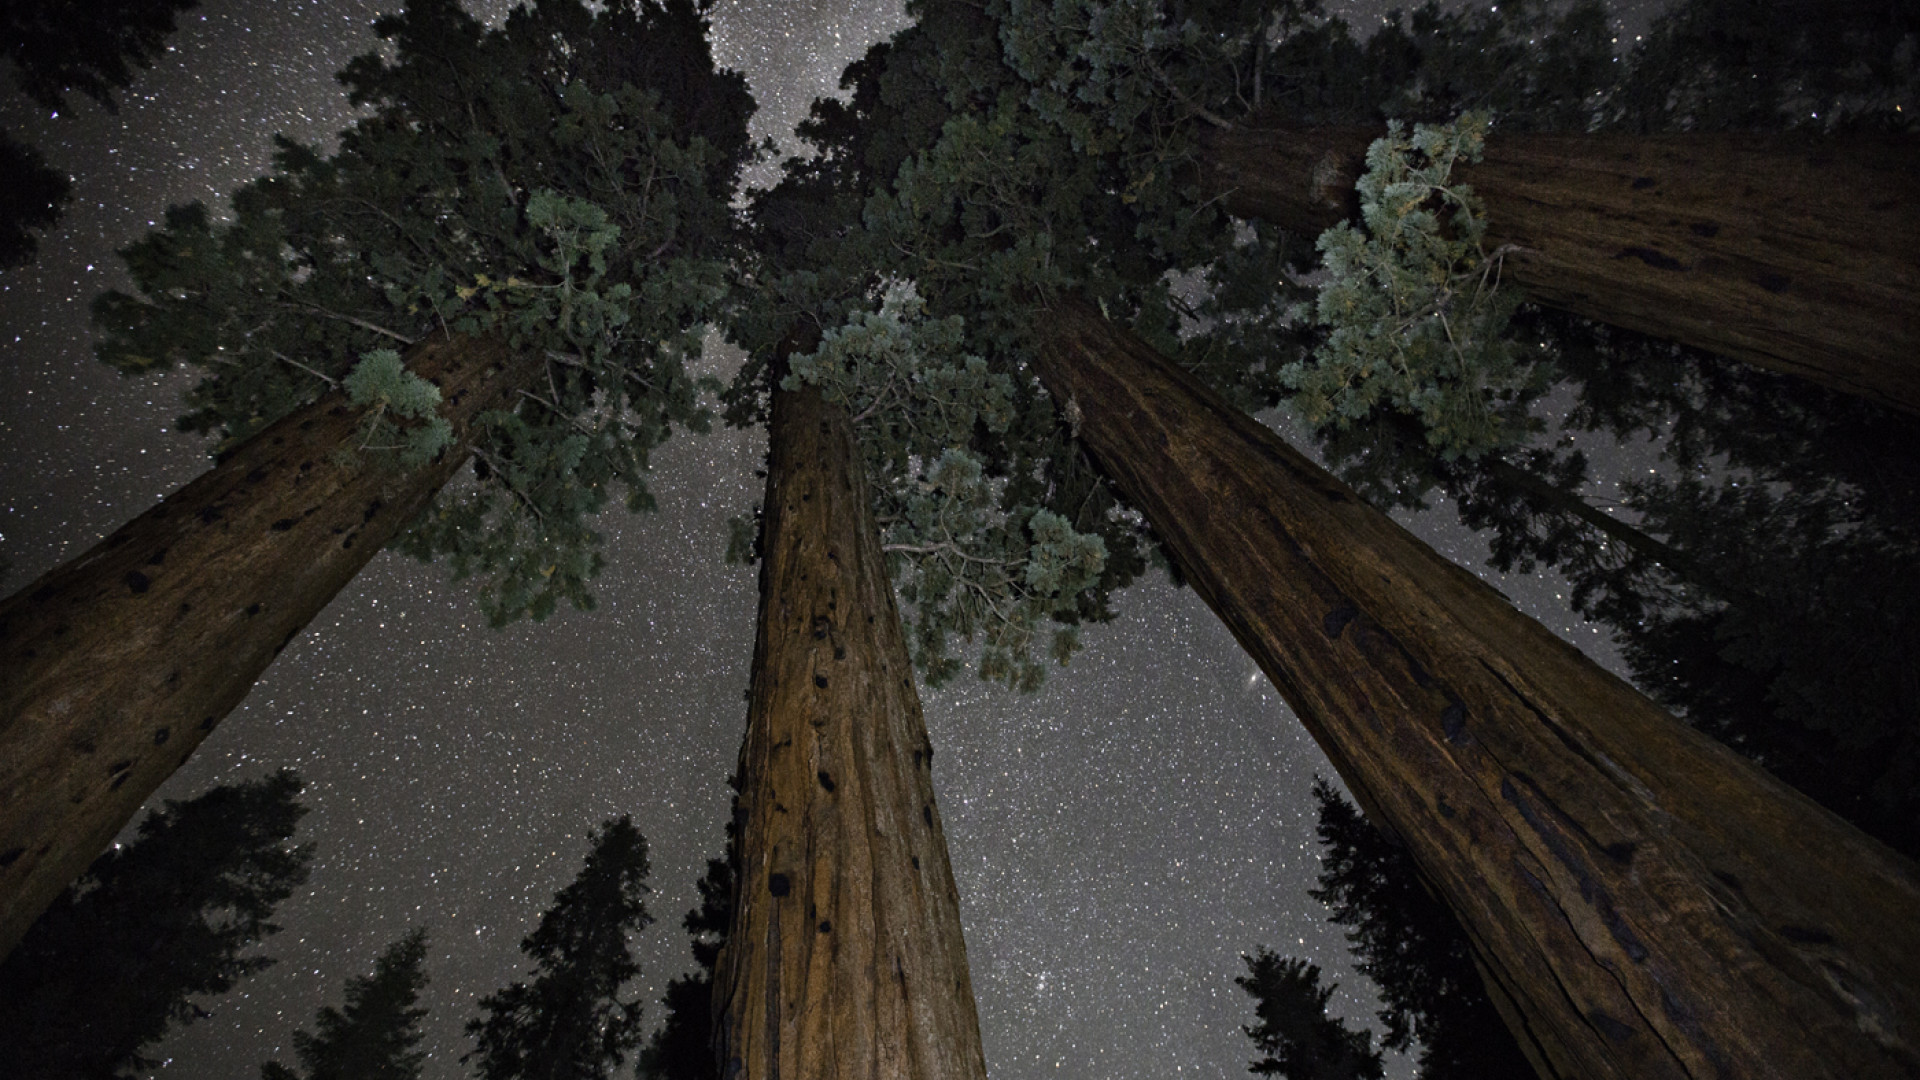 Californian redwood set against night sky